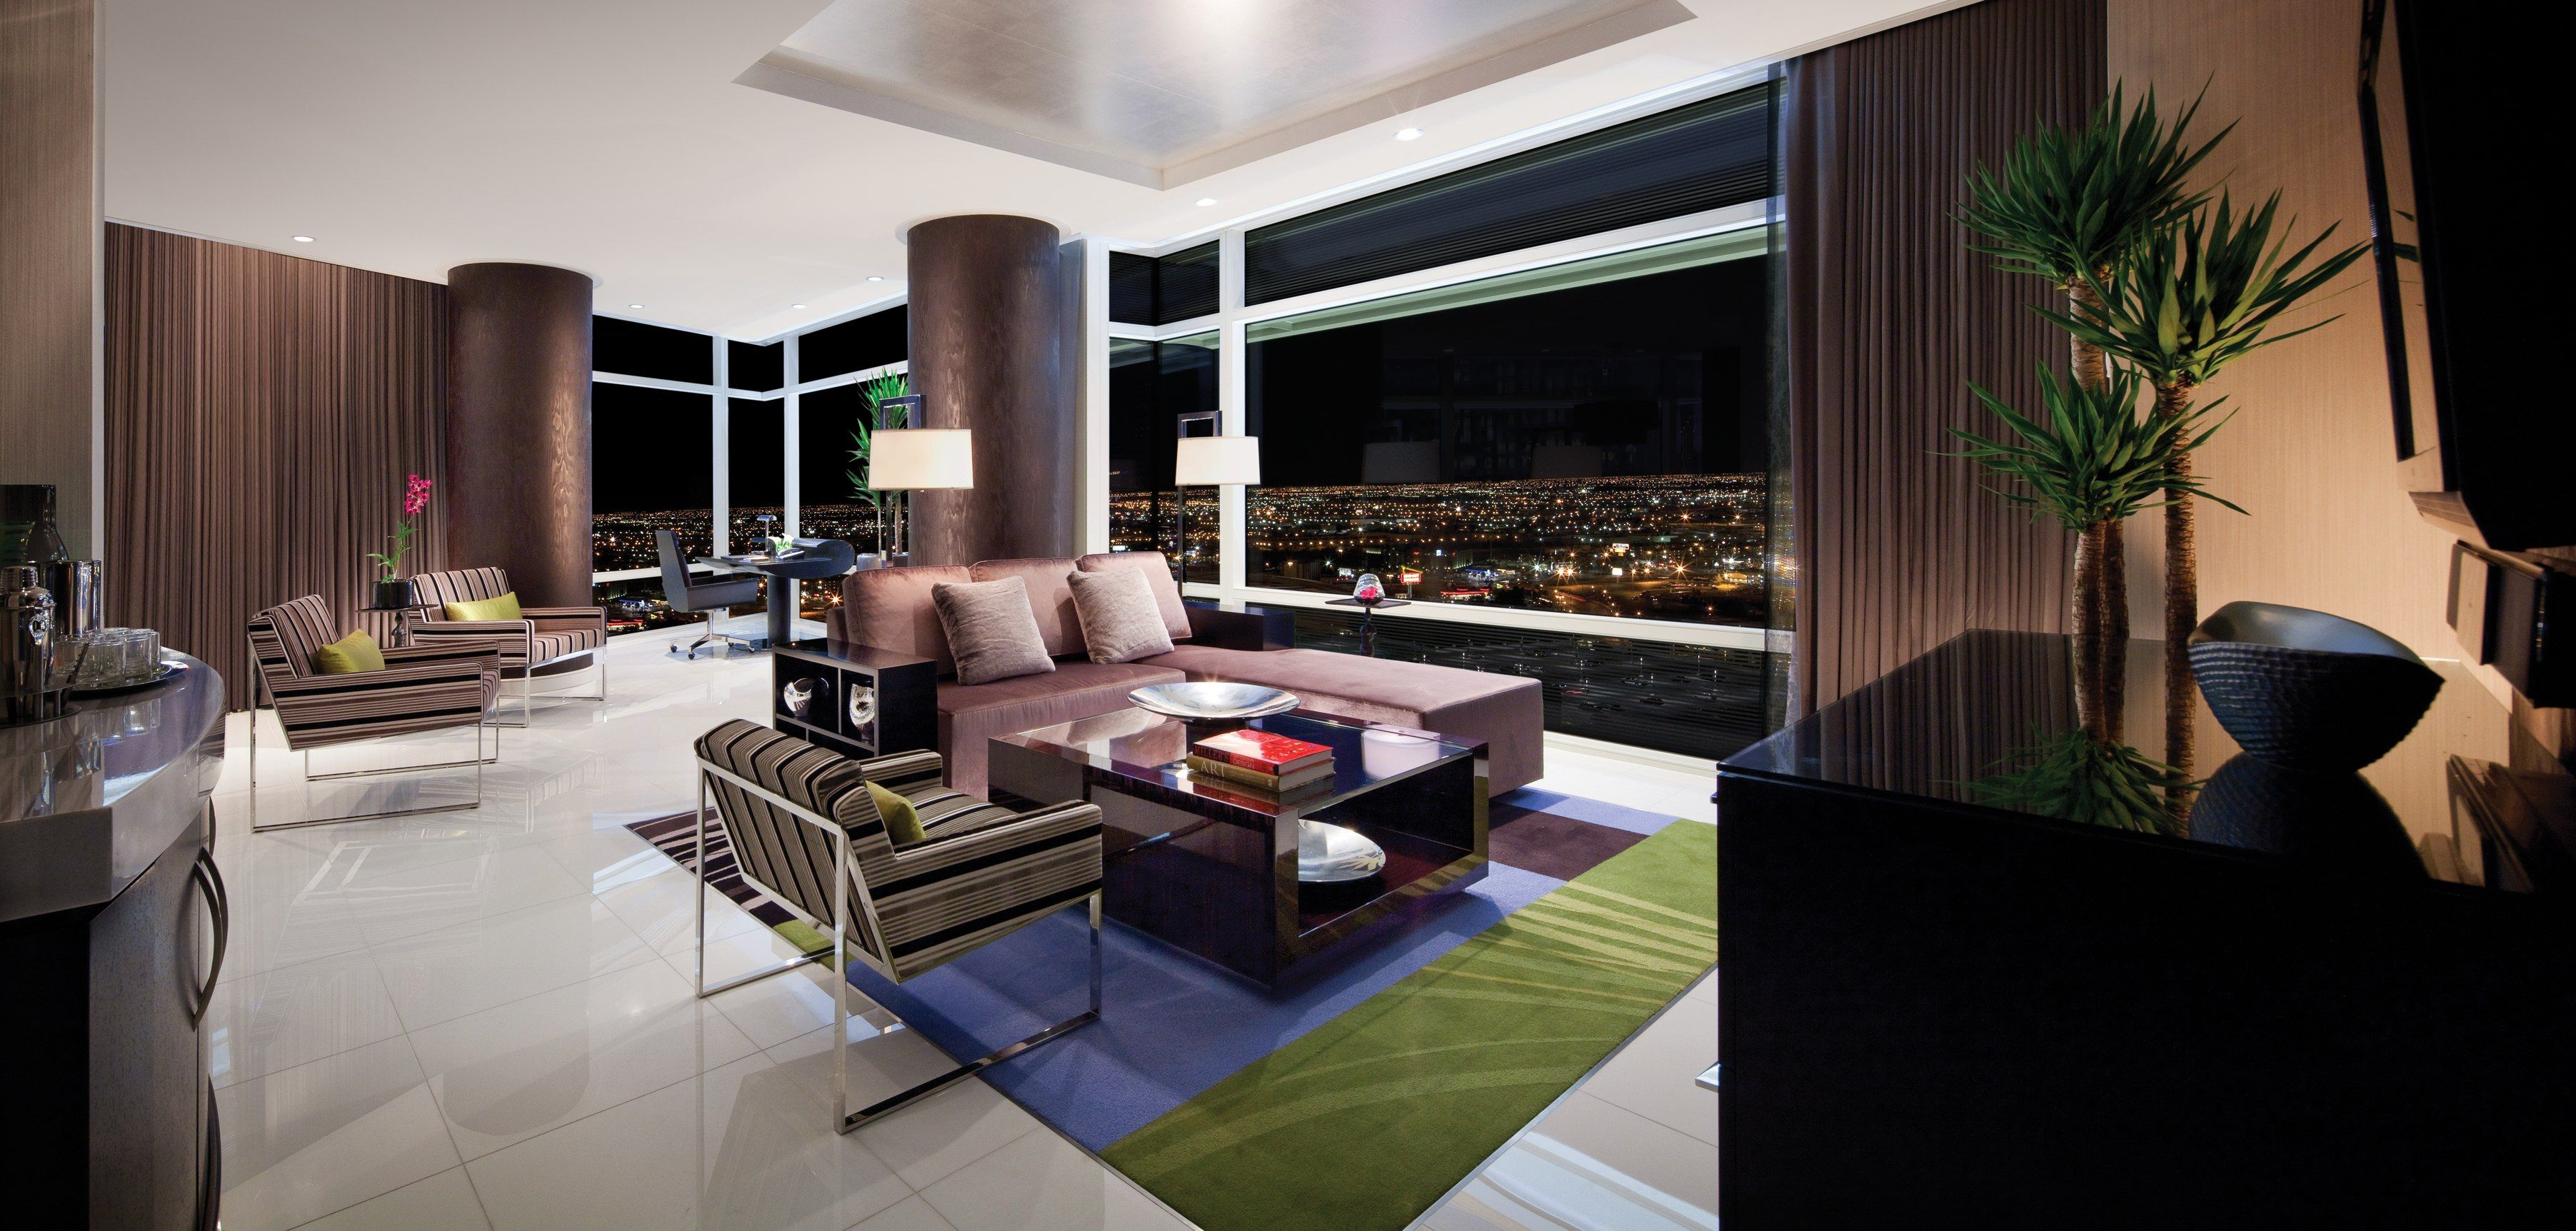 Mirage One Bedroom Tower Suite Enjoy All Our Lavish Luxurious In This 1465 Square Foot Sanctuary